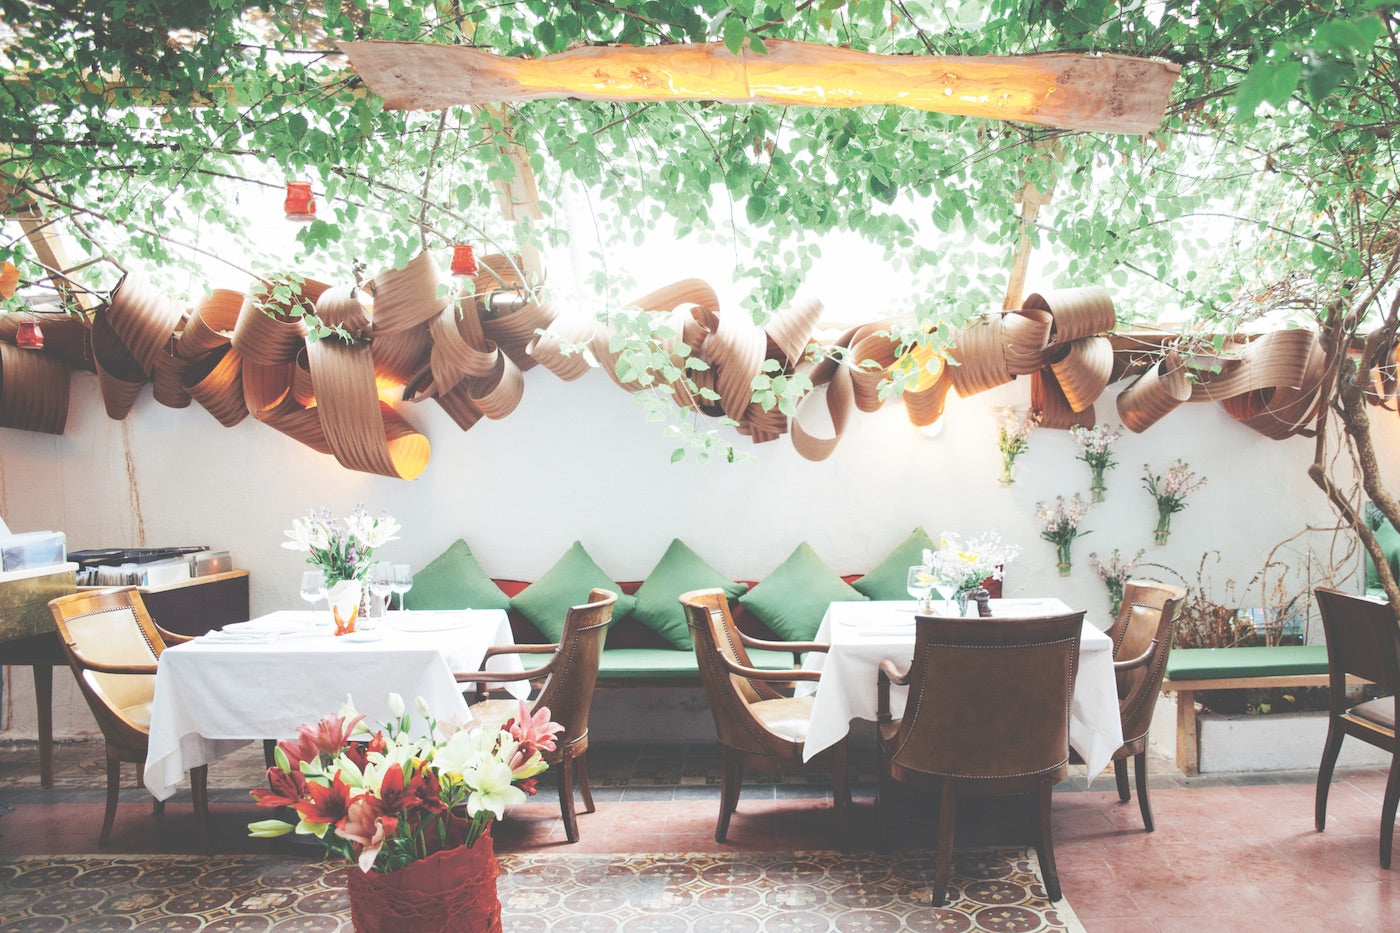 A set table with white linens at Villa Clara in Beirut. Flowers in the front and plants from the garden in the background of the picture. (Photo: Monocle)